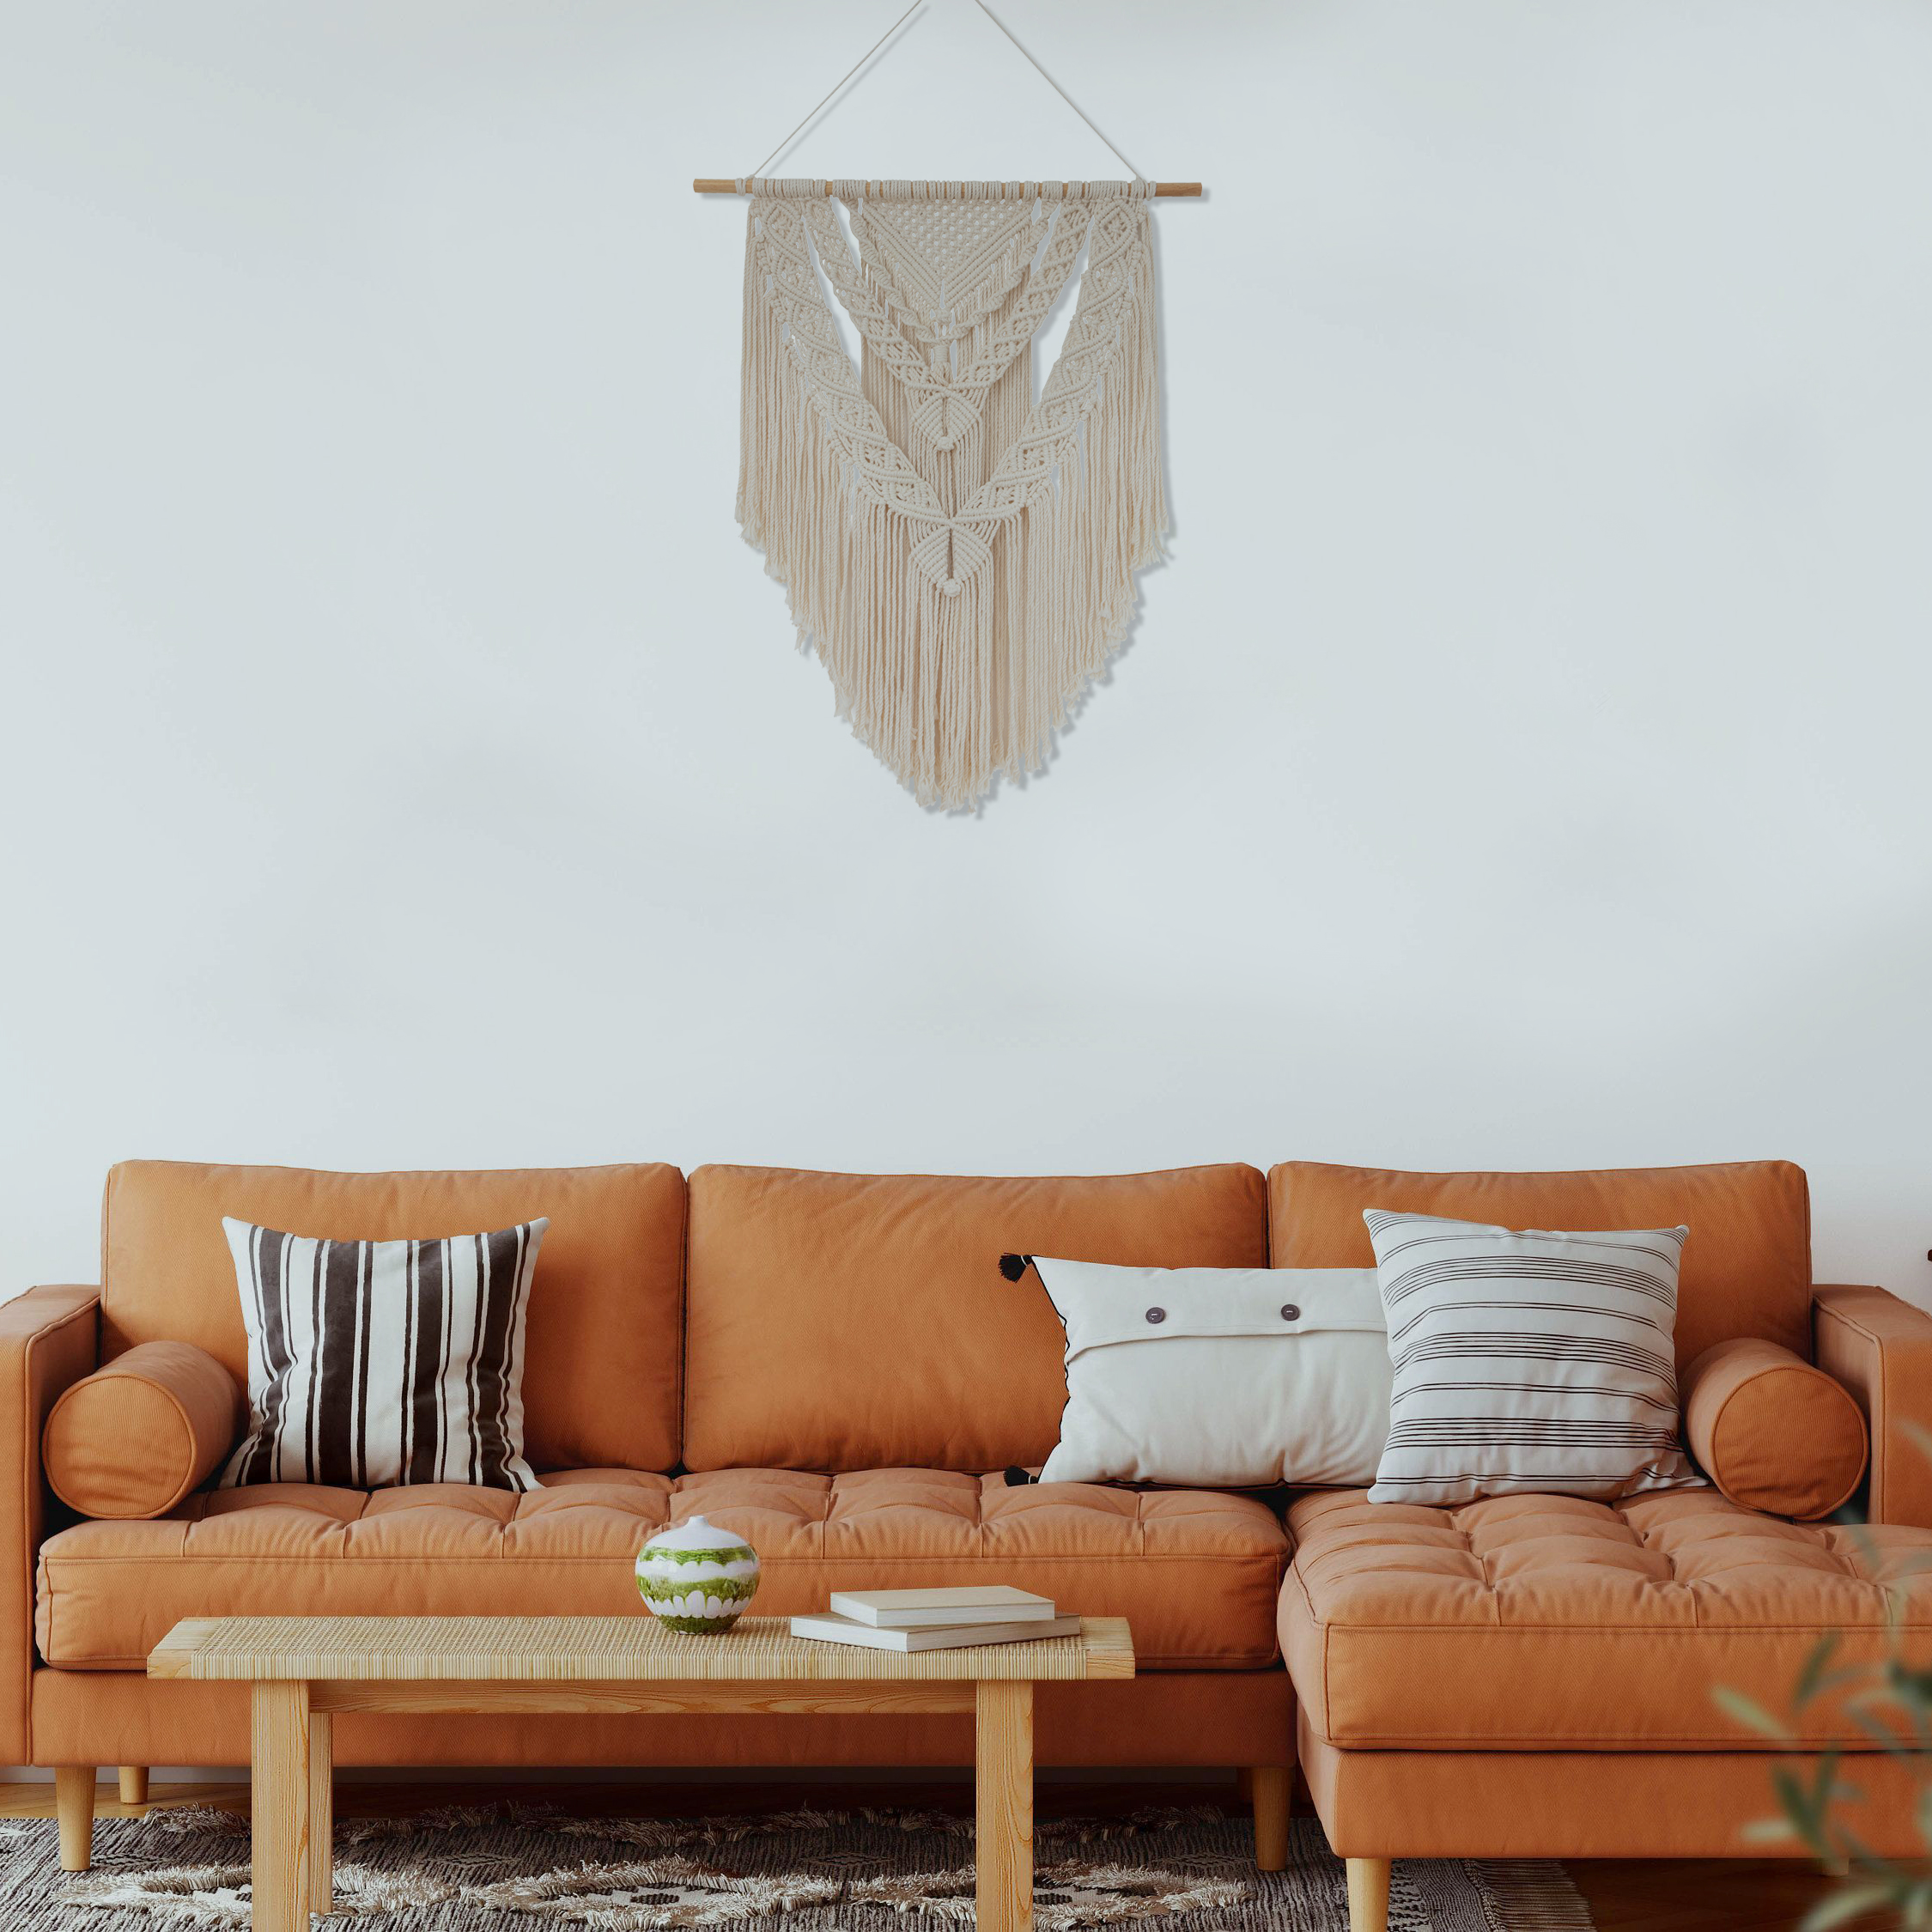 TDy Corners Decorating Living Room with Boho Style by Macrame Wall Hanging (4)